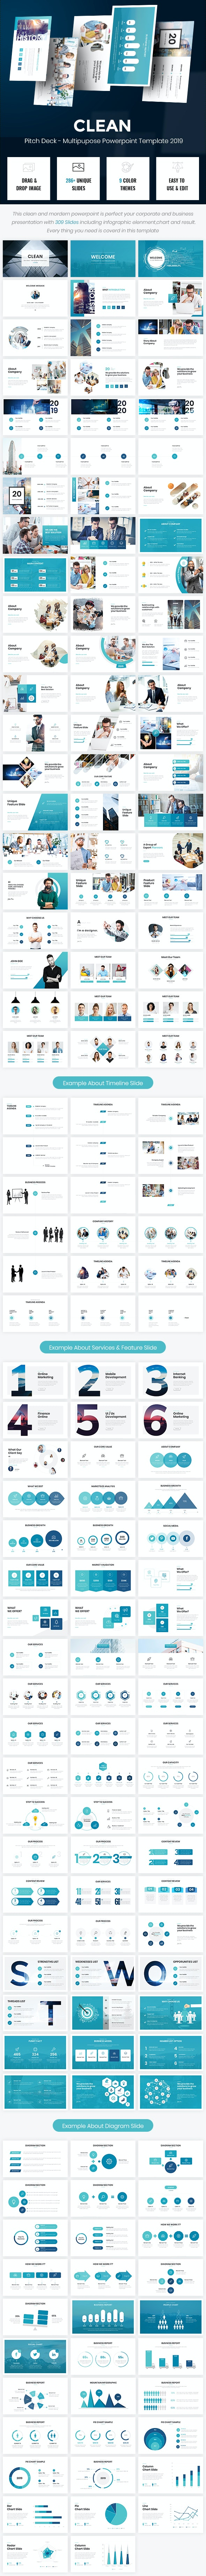 Clean - Pitch Deck Multipurpose Powerpoint Template - Business PowerPoint Templates